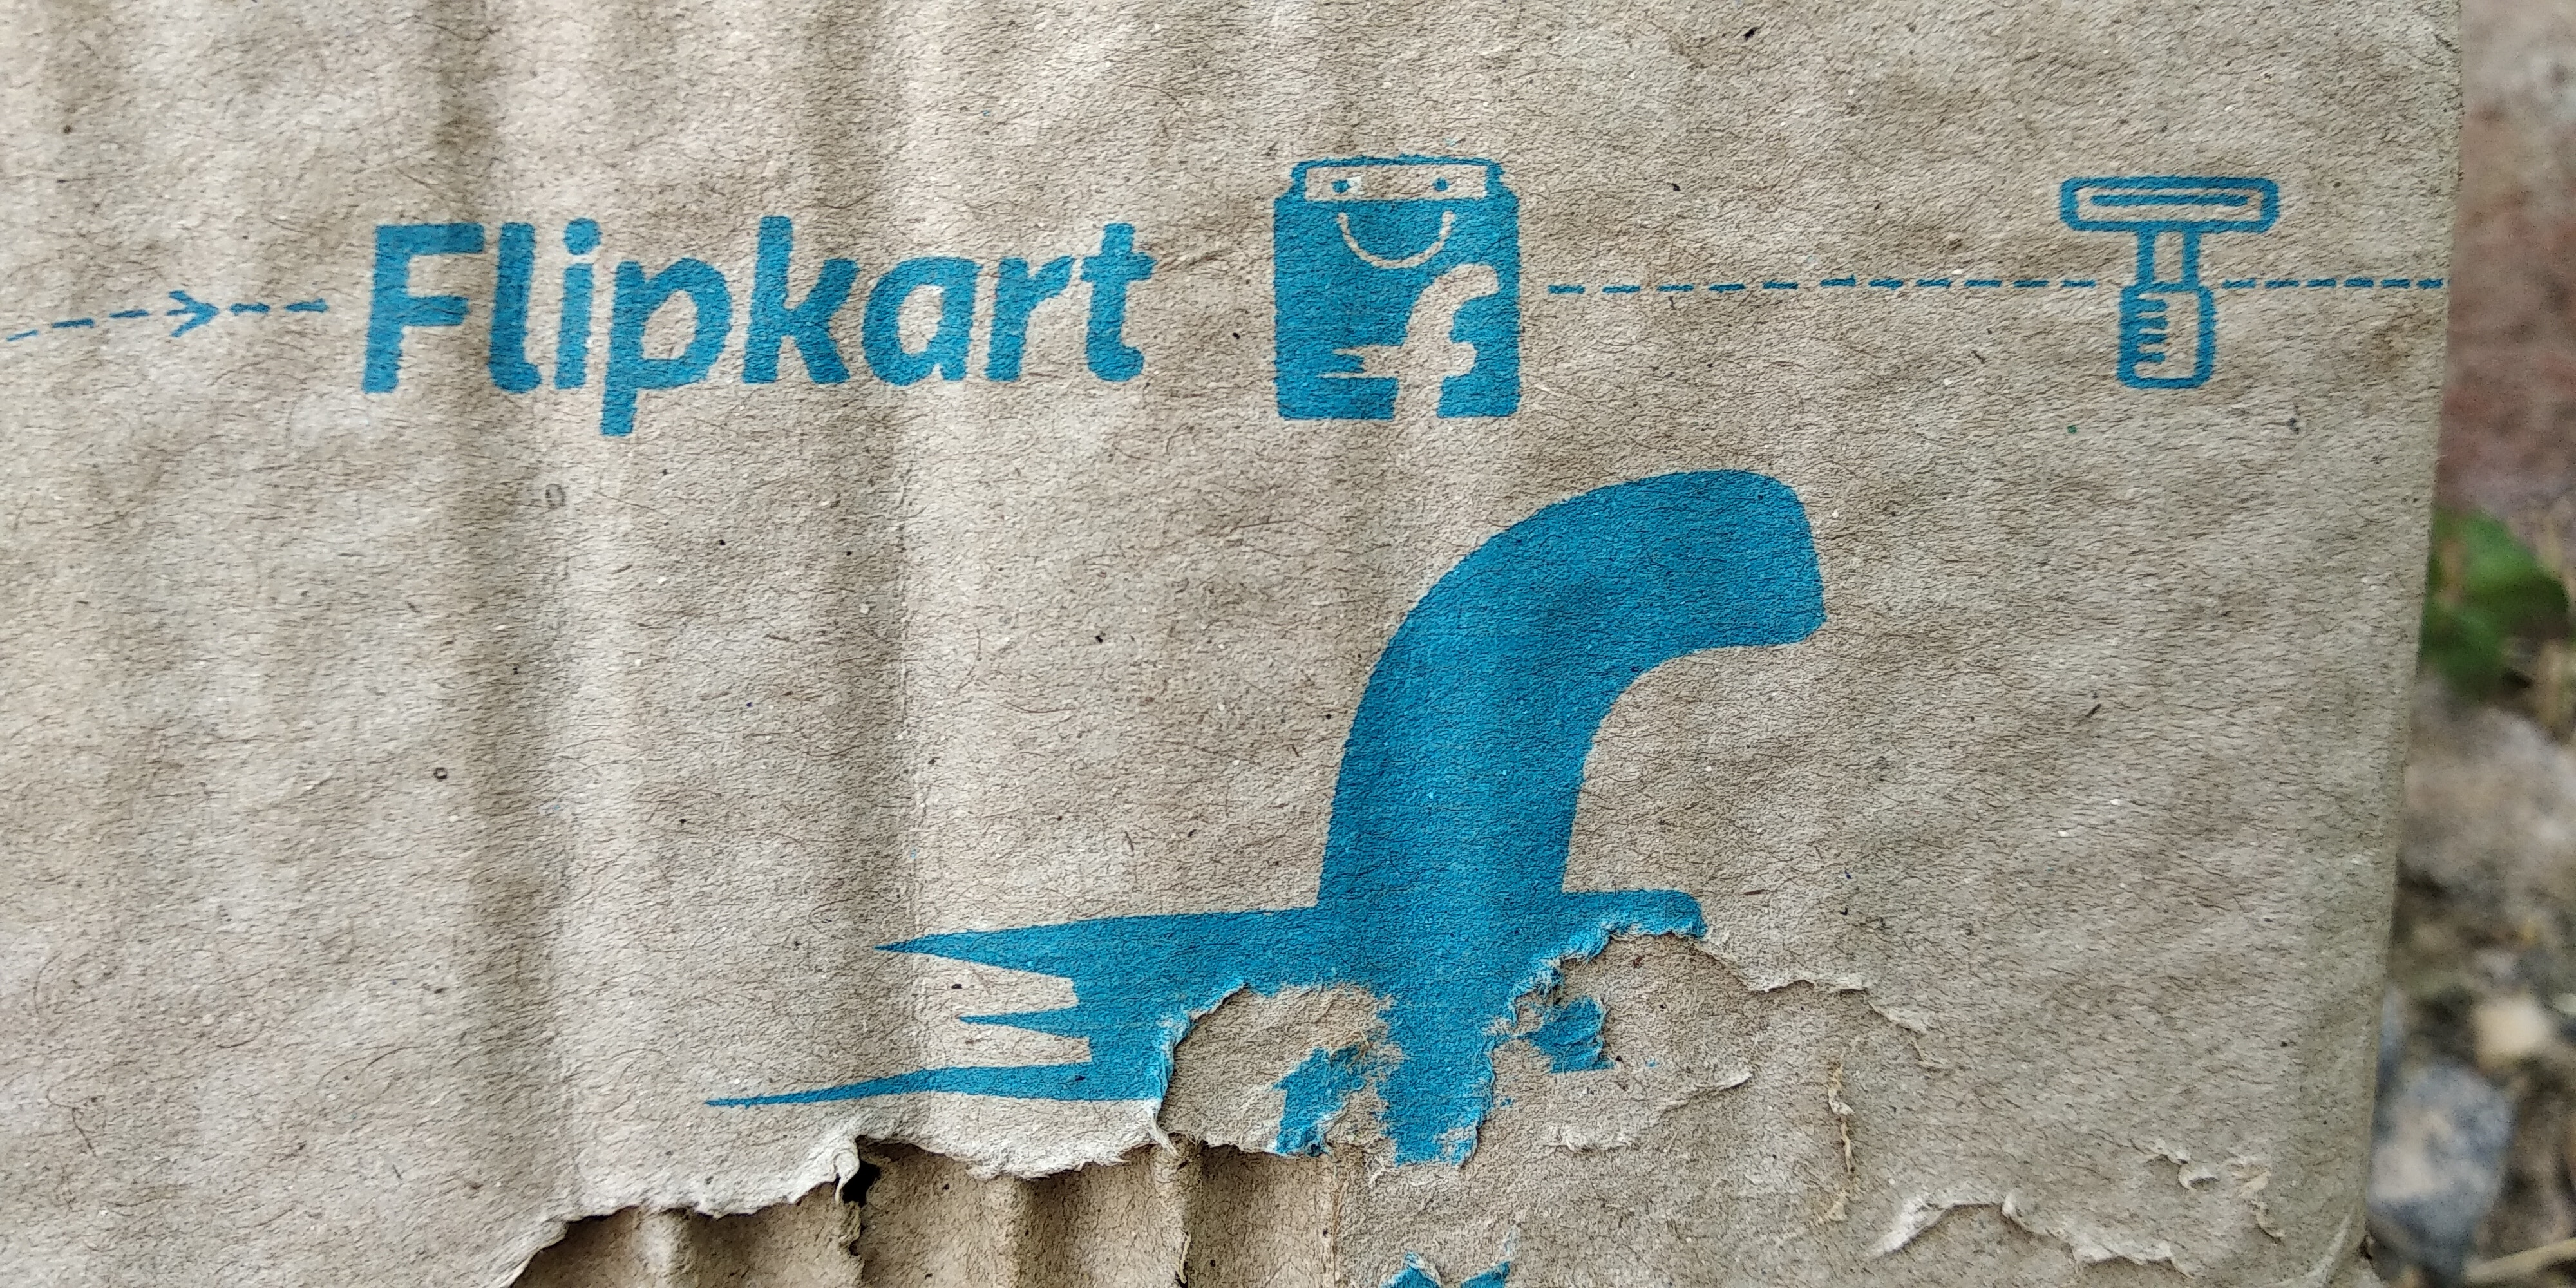 Flipkart Grocery sets up warehouse in Lucknow, to create over 500 direct jobs